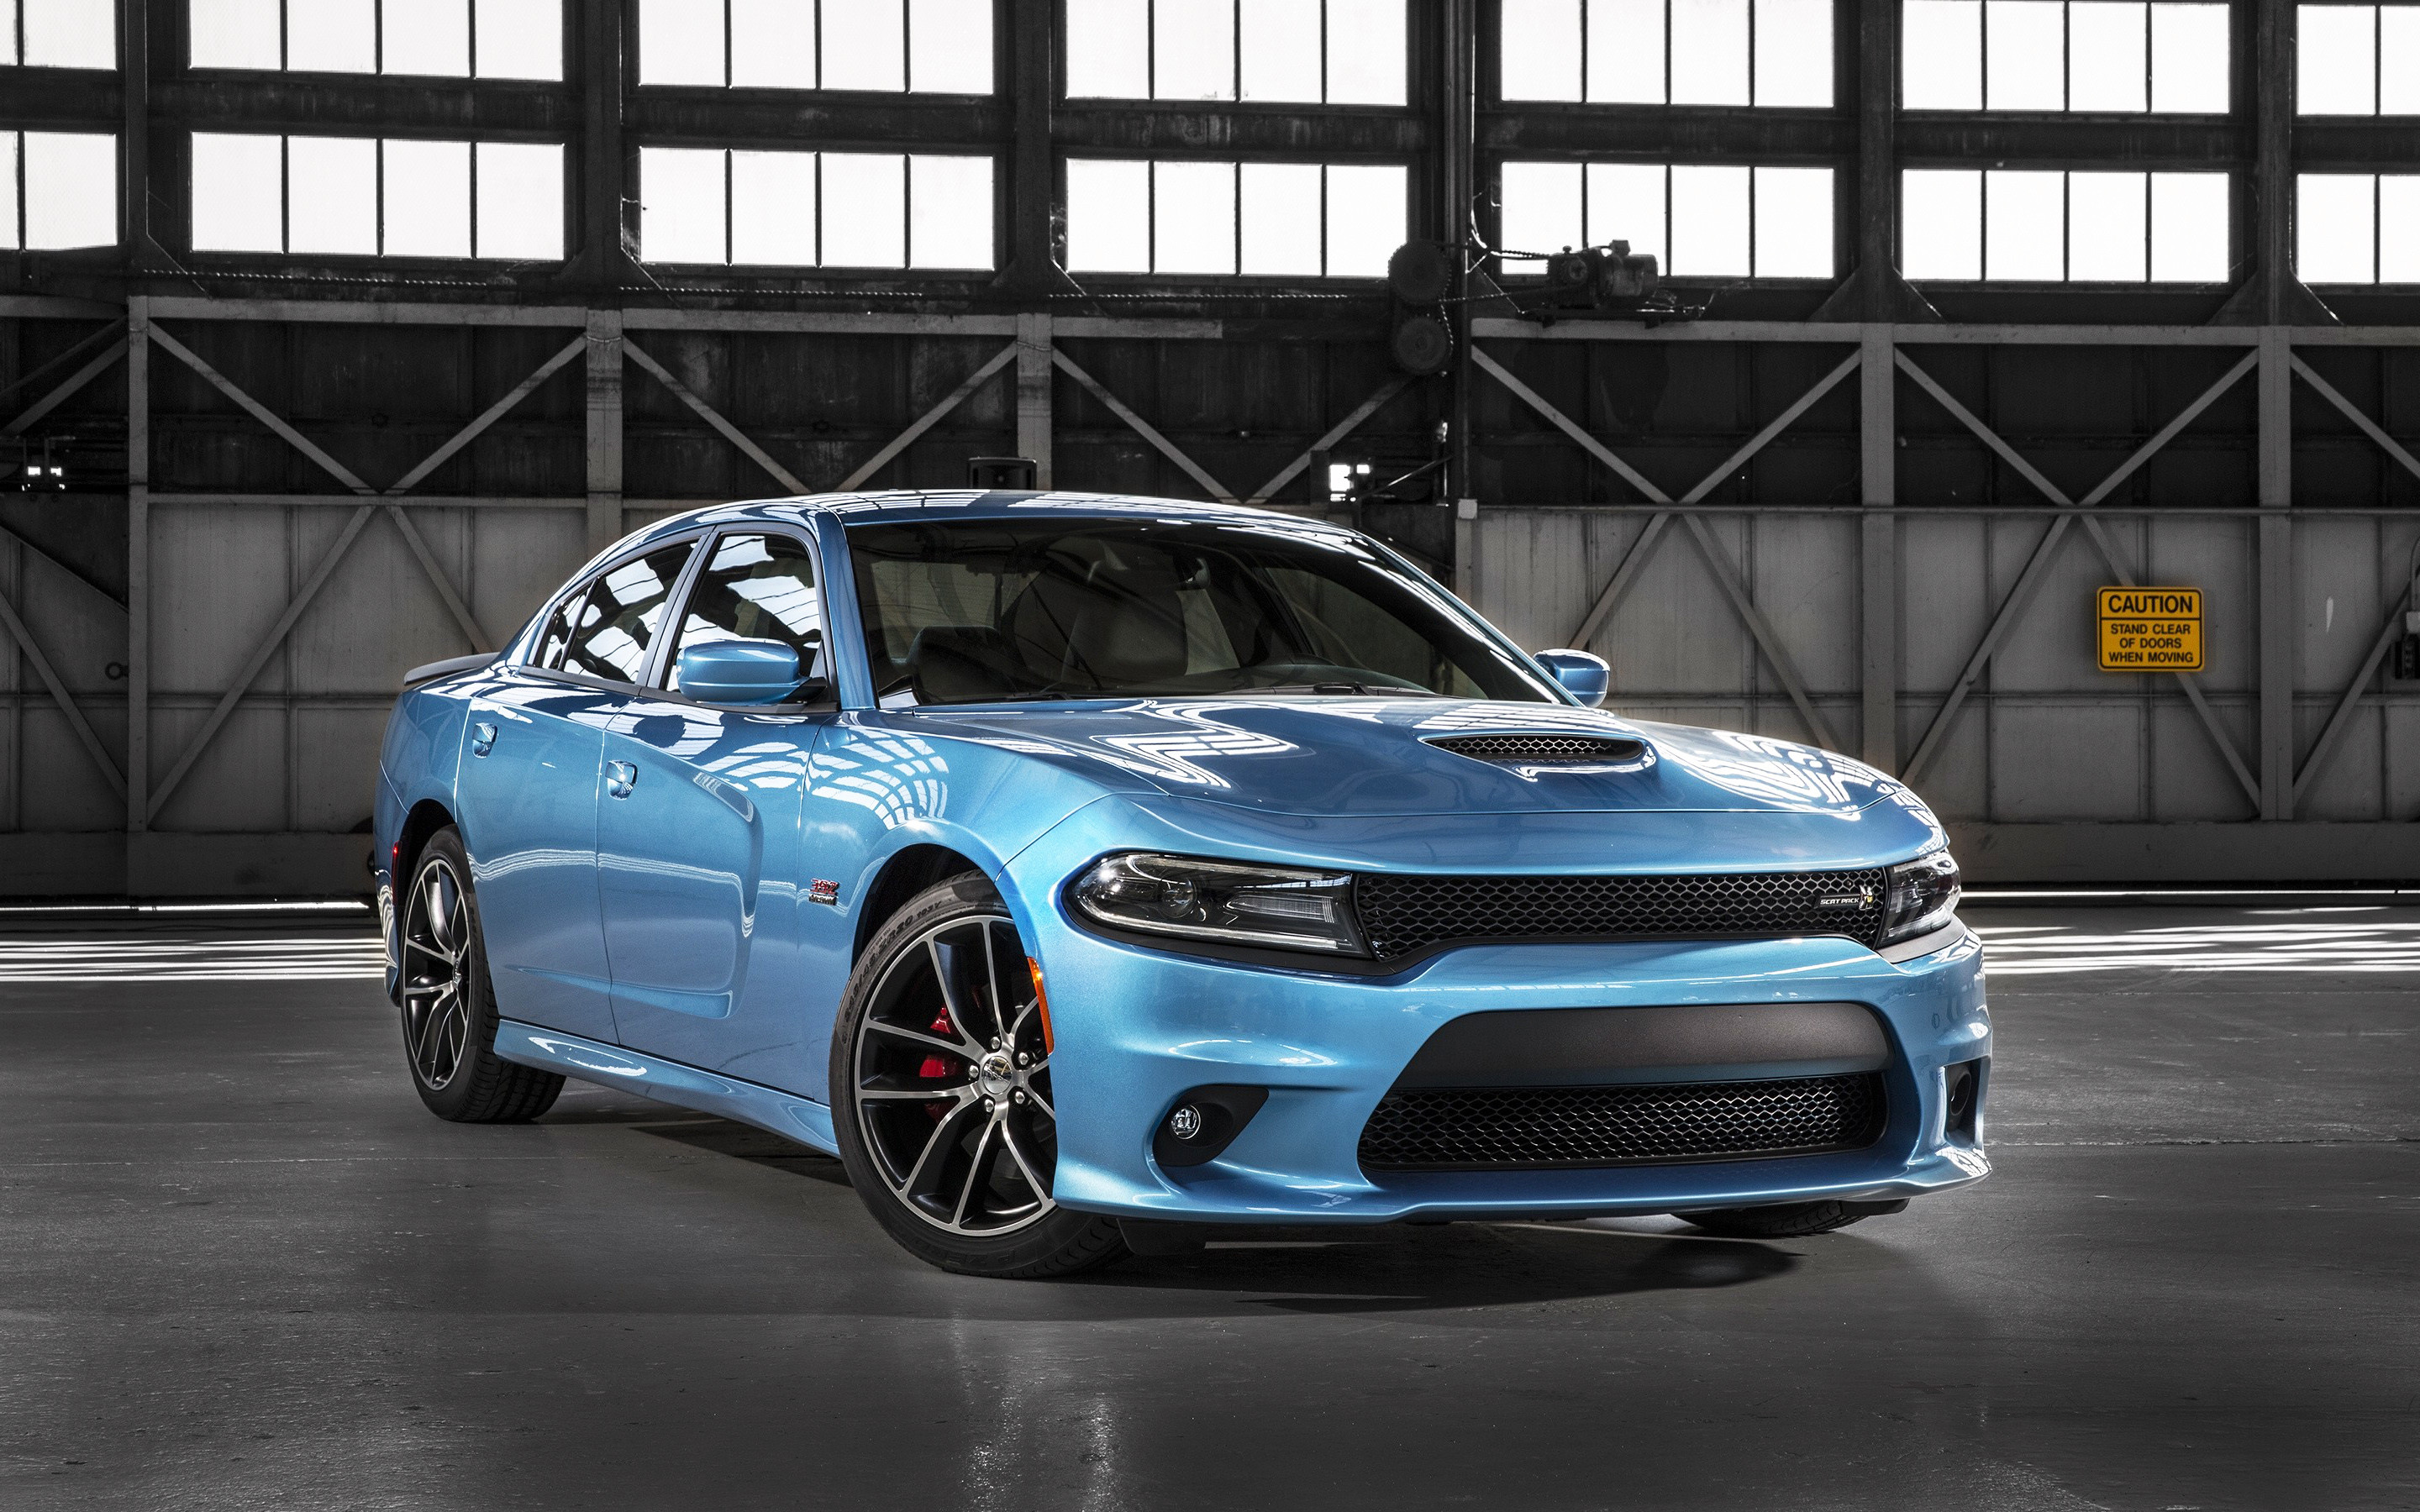 2880x1800 Dodge Charger RT Scat Pack WallPaper HD - http://imashon.com/